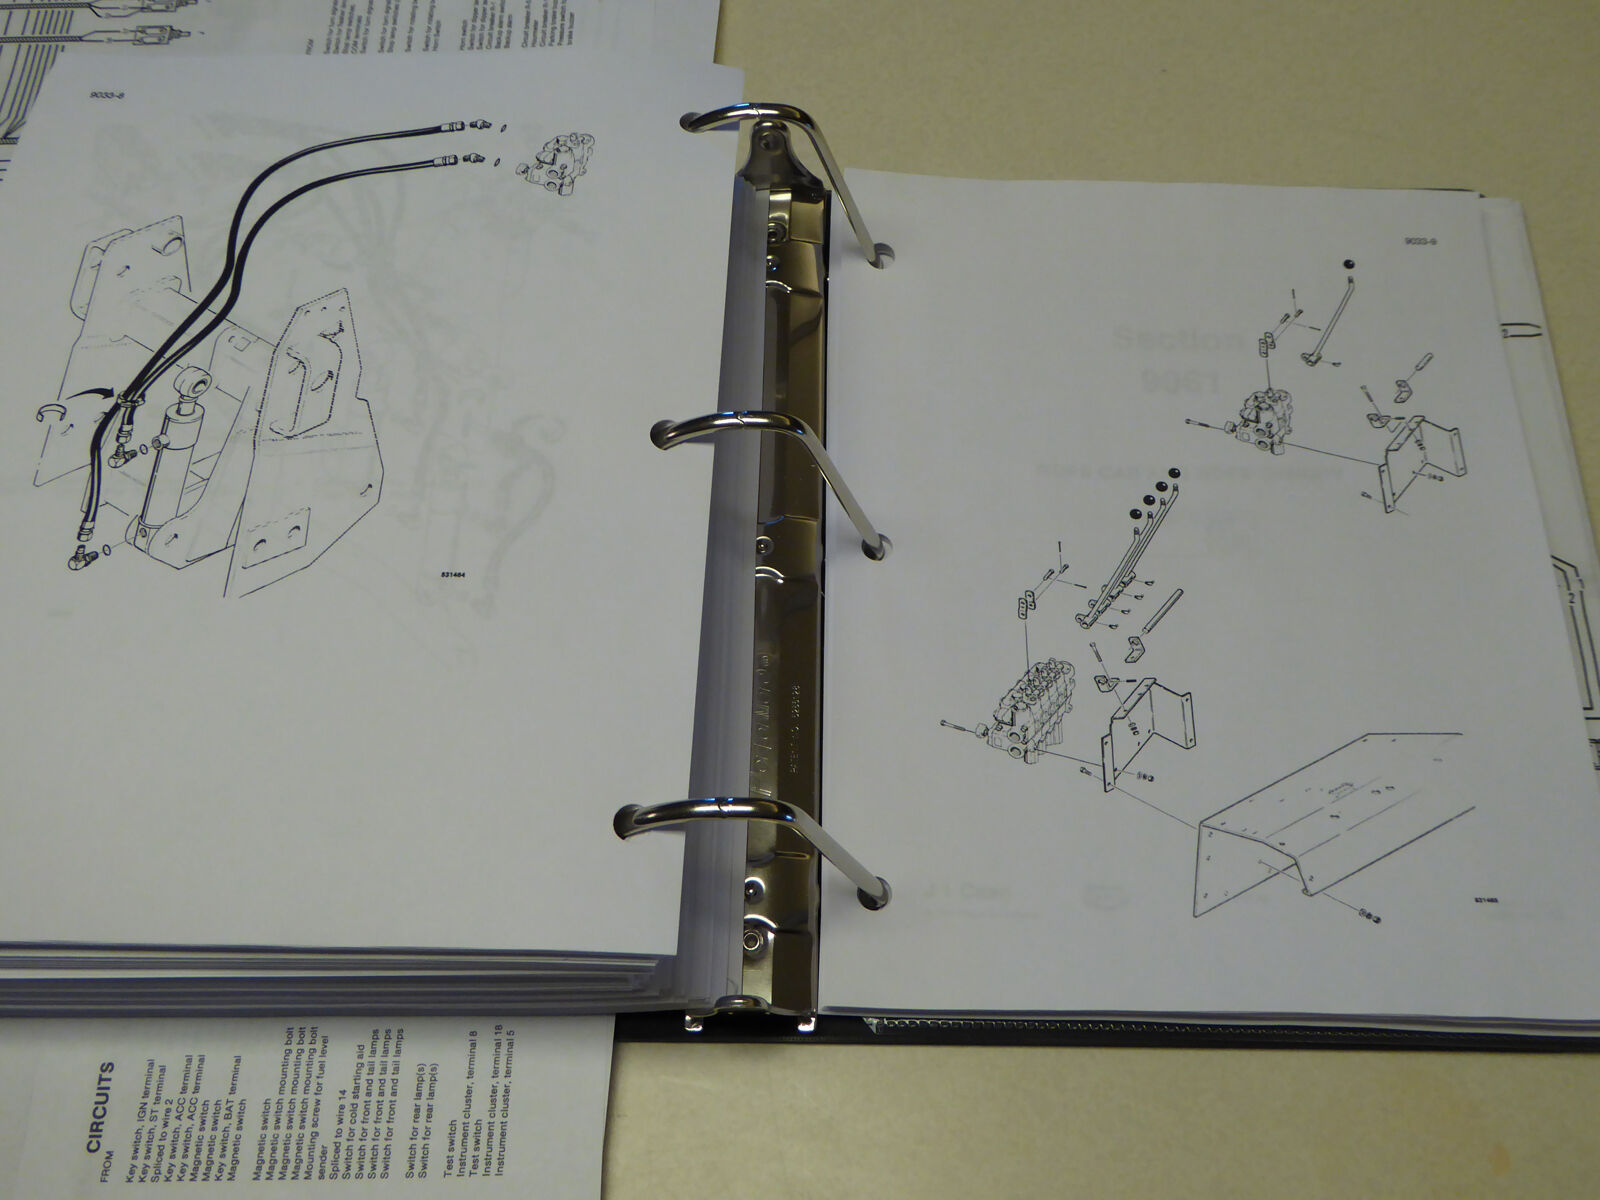 Case 580 Backhoe Ignition Wiring Diagram Case Free Engine Image For